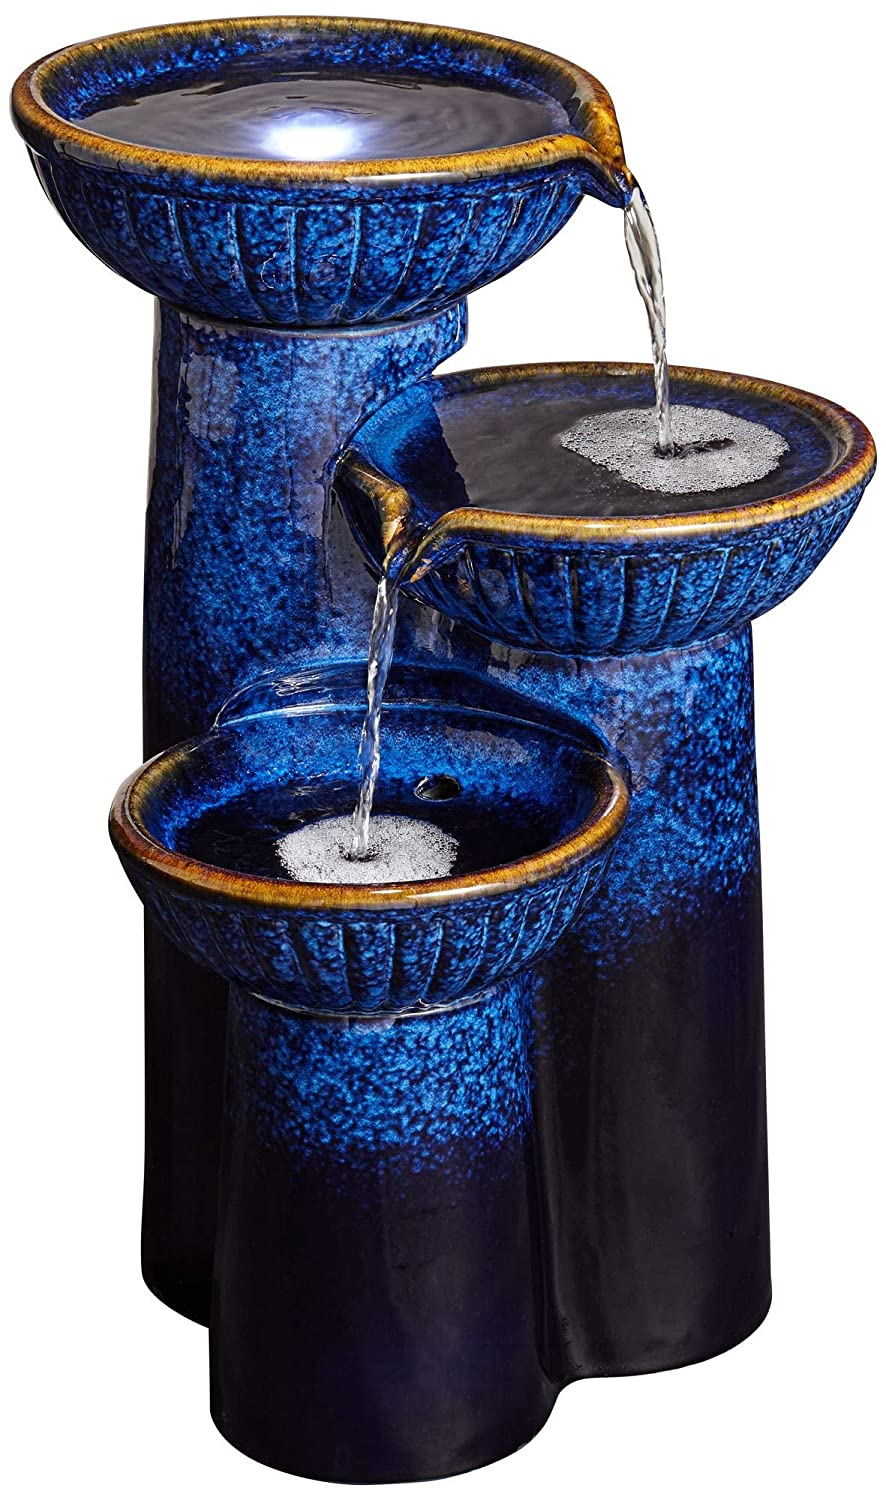 "John Timberland 3-Bowl Ceramic Blue Cobalt 26 3/4"" High LED Fountain"